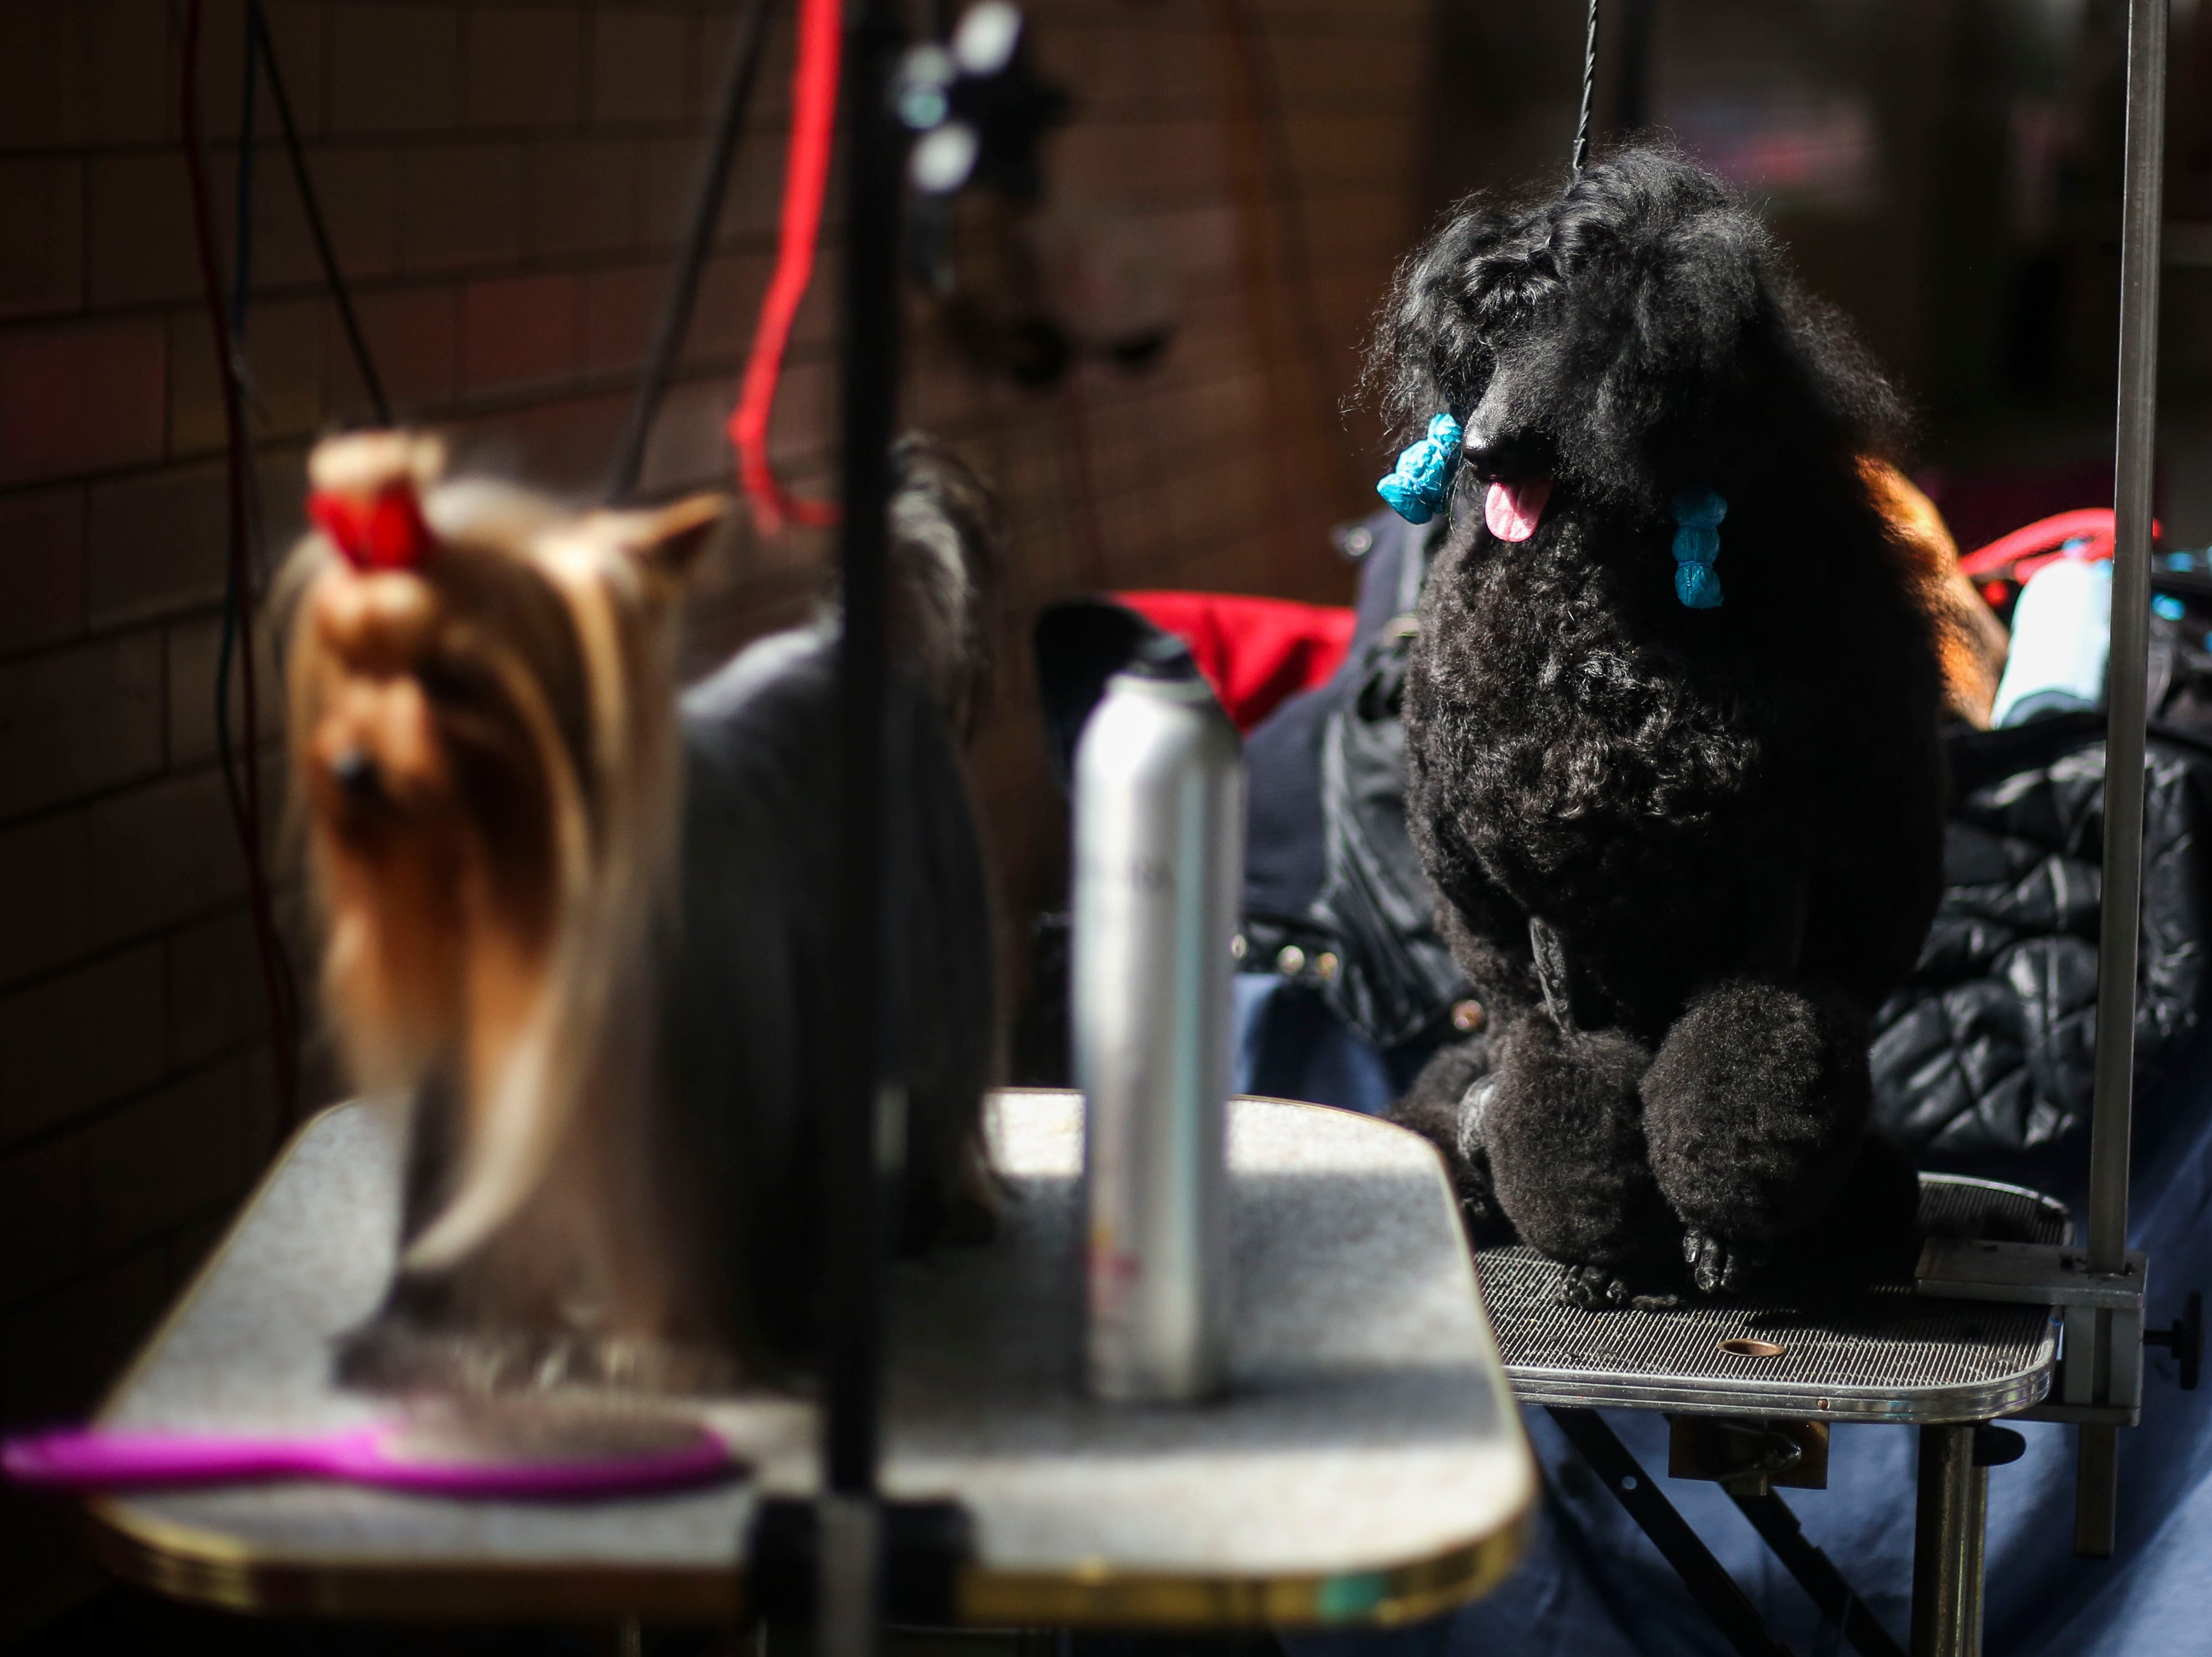 Telsa, a 16-month-old miniature poodle, waits competition during the Kentuckiana Cluster of Dog Shows at the Kentucky Fair and Exposition Center in Louisville, Ky. on Thursday, March 14, 2019.